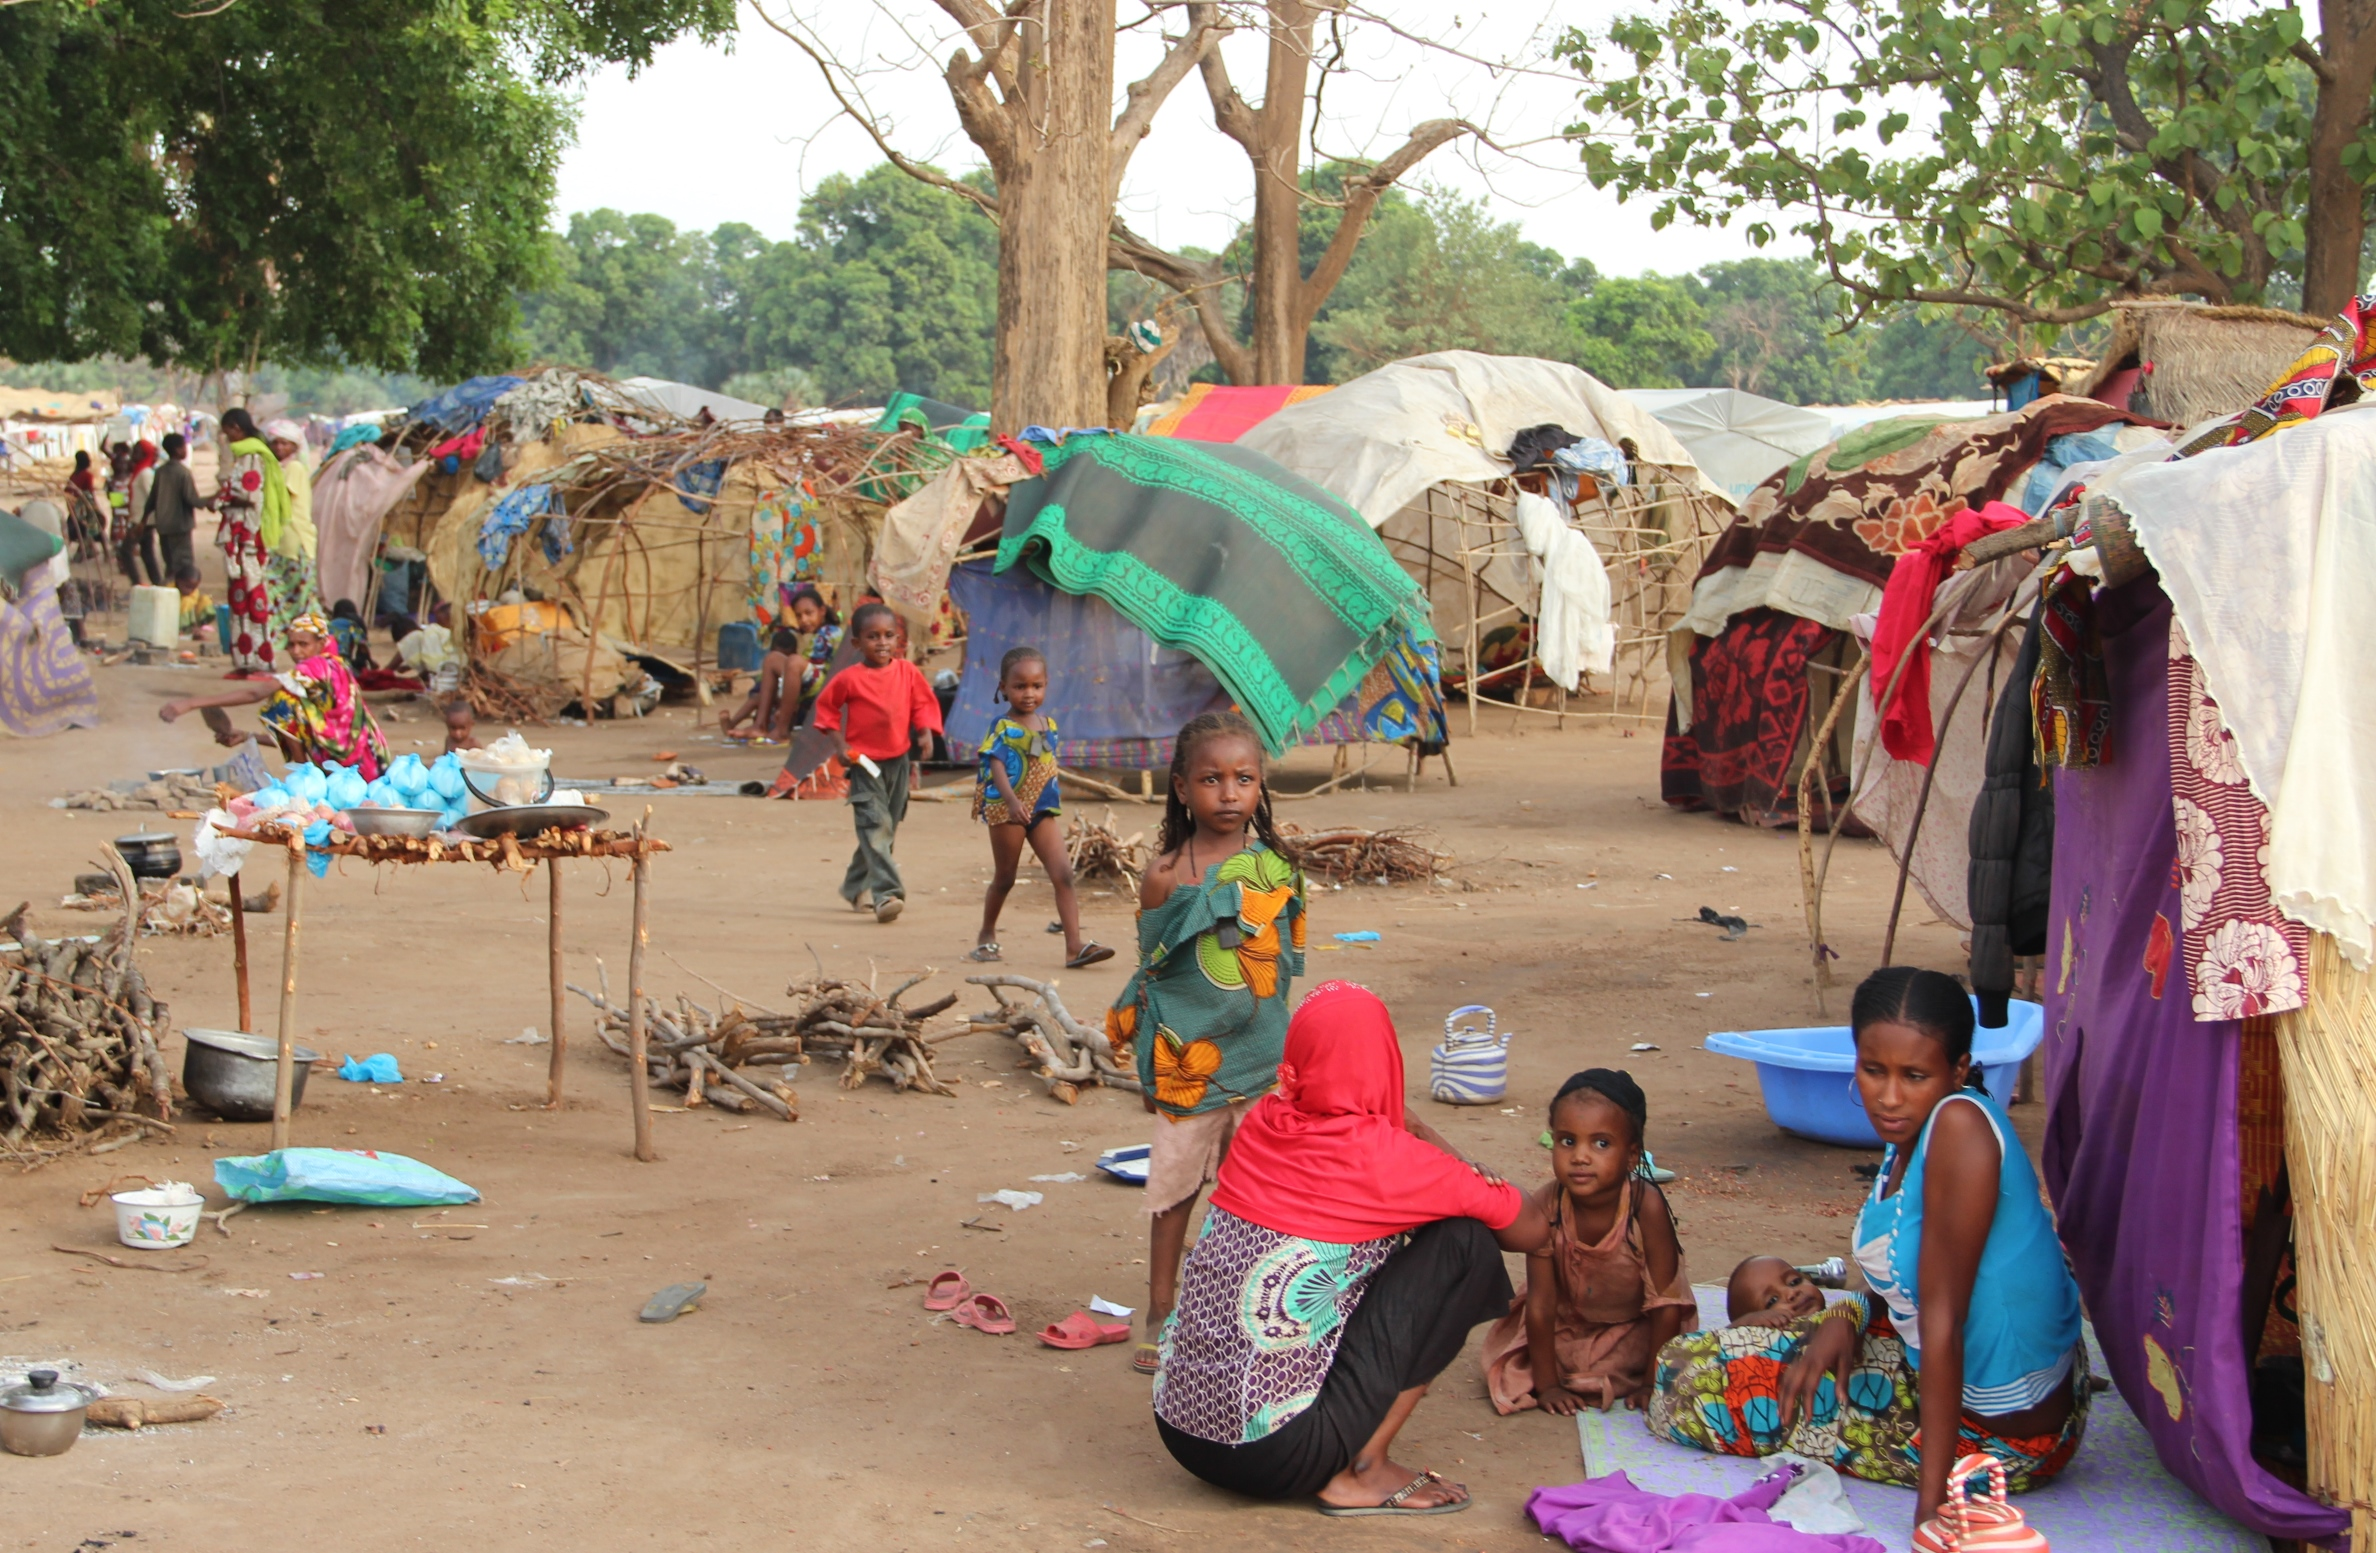 Some 10,000 inhabitants of Doyaba transit camp in southern Chad, home to 17,143 people who fled the violence in CAR and were helped across the border by the Chadian military, have not yet received shelter. Aid agencies are severely under-funded and reside